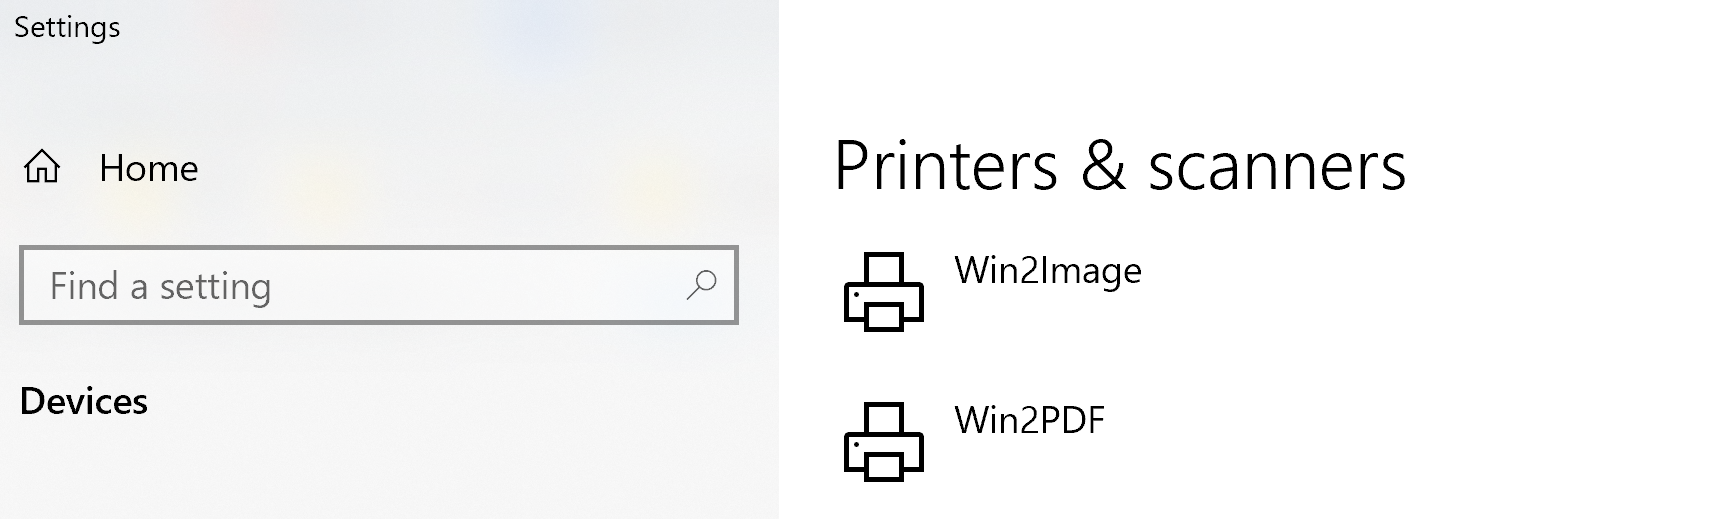 Win2Image and Win2PDF in the printers folder